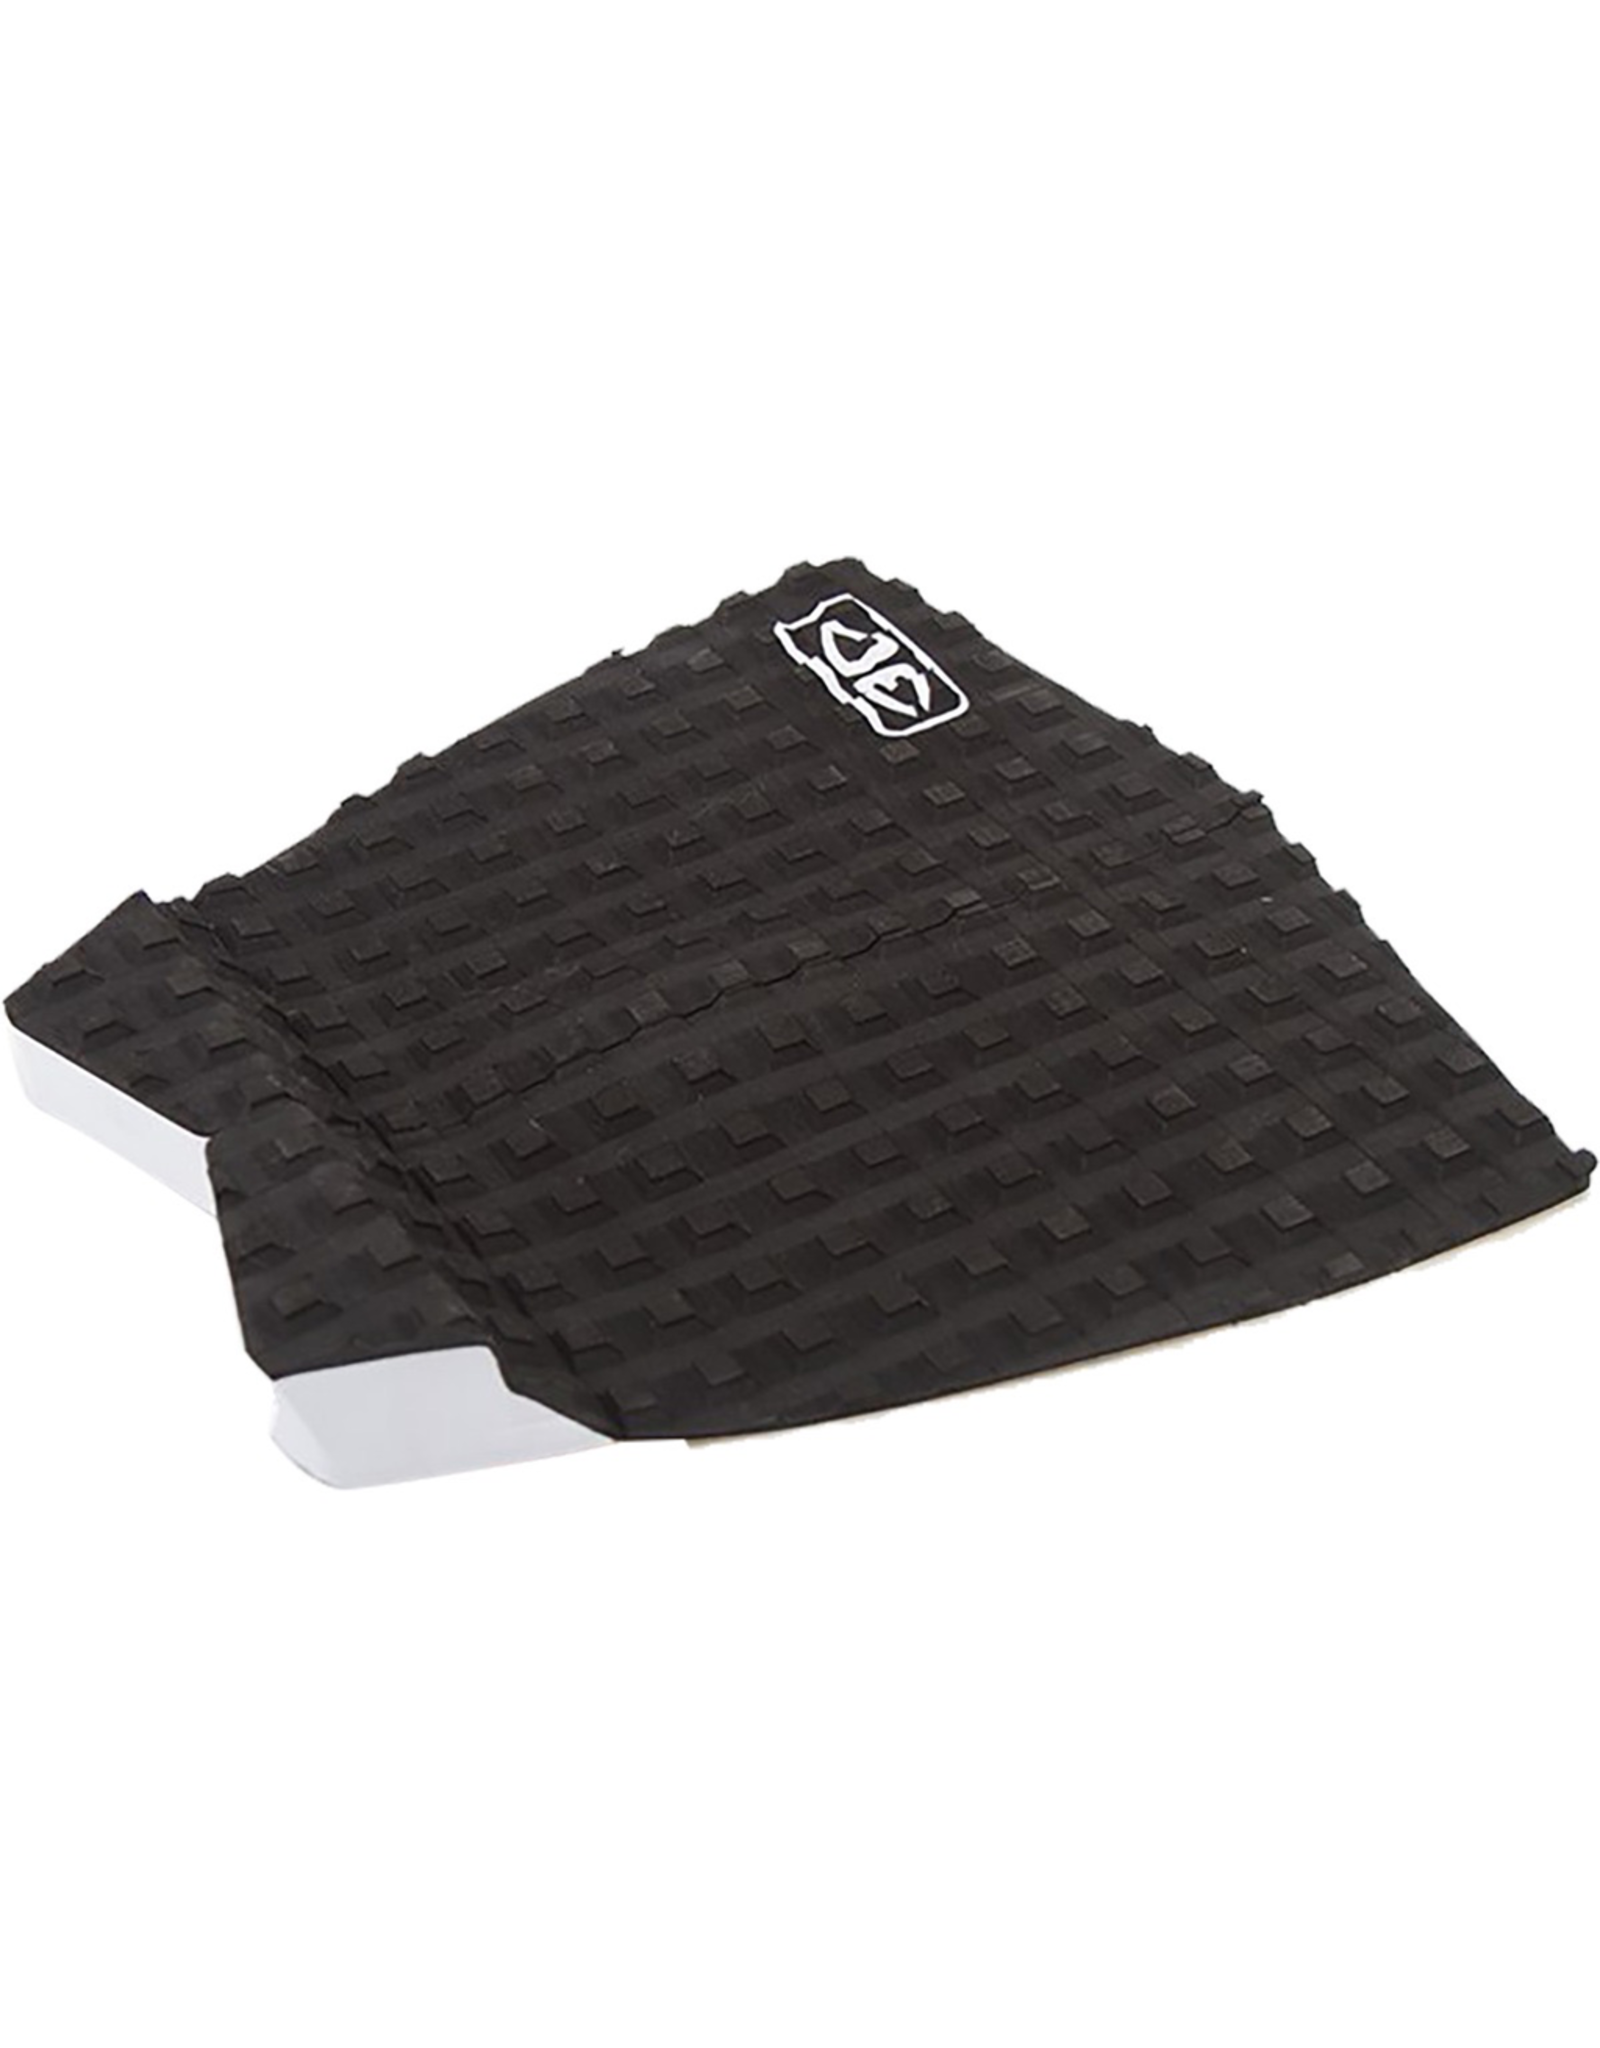 OCEAN & EARTH Ocean & Earth Thrash Black Surfboard Traction Pad - 2 Piece Features:<br /> <br /> One (1) Ocean & Earth Thrash Black Surfboard Traction Pad - 2 Piece from Ocean & Earth<br /> Super grippy to help keep your back foot planted<br /> Made from high-quality materials and built to la